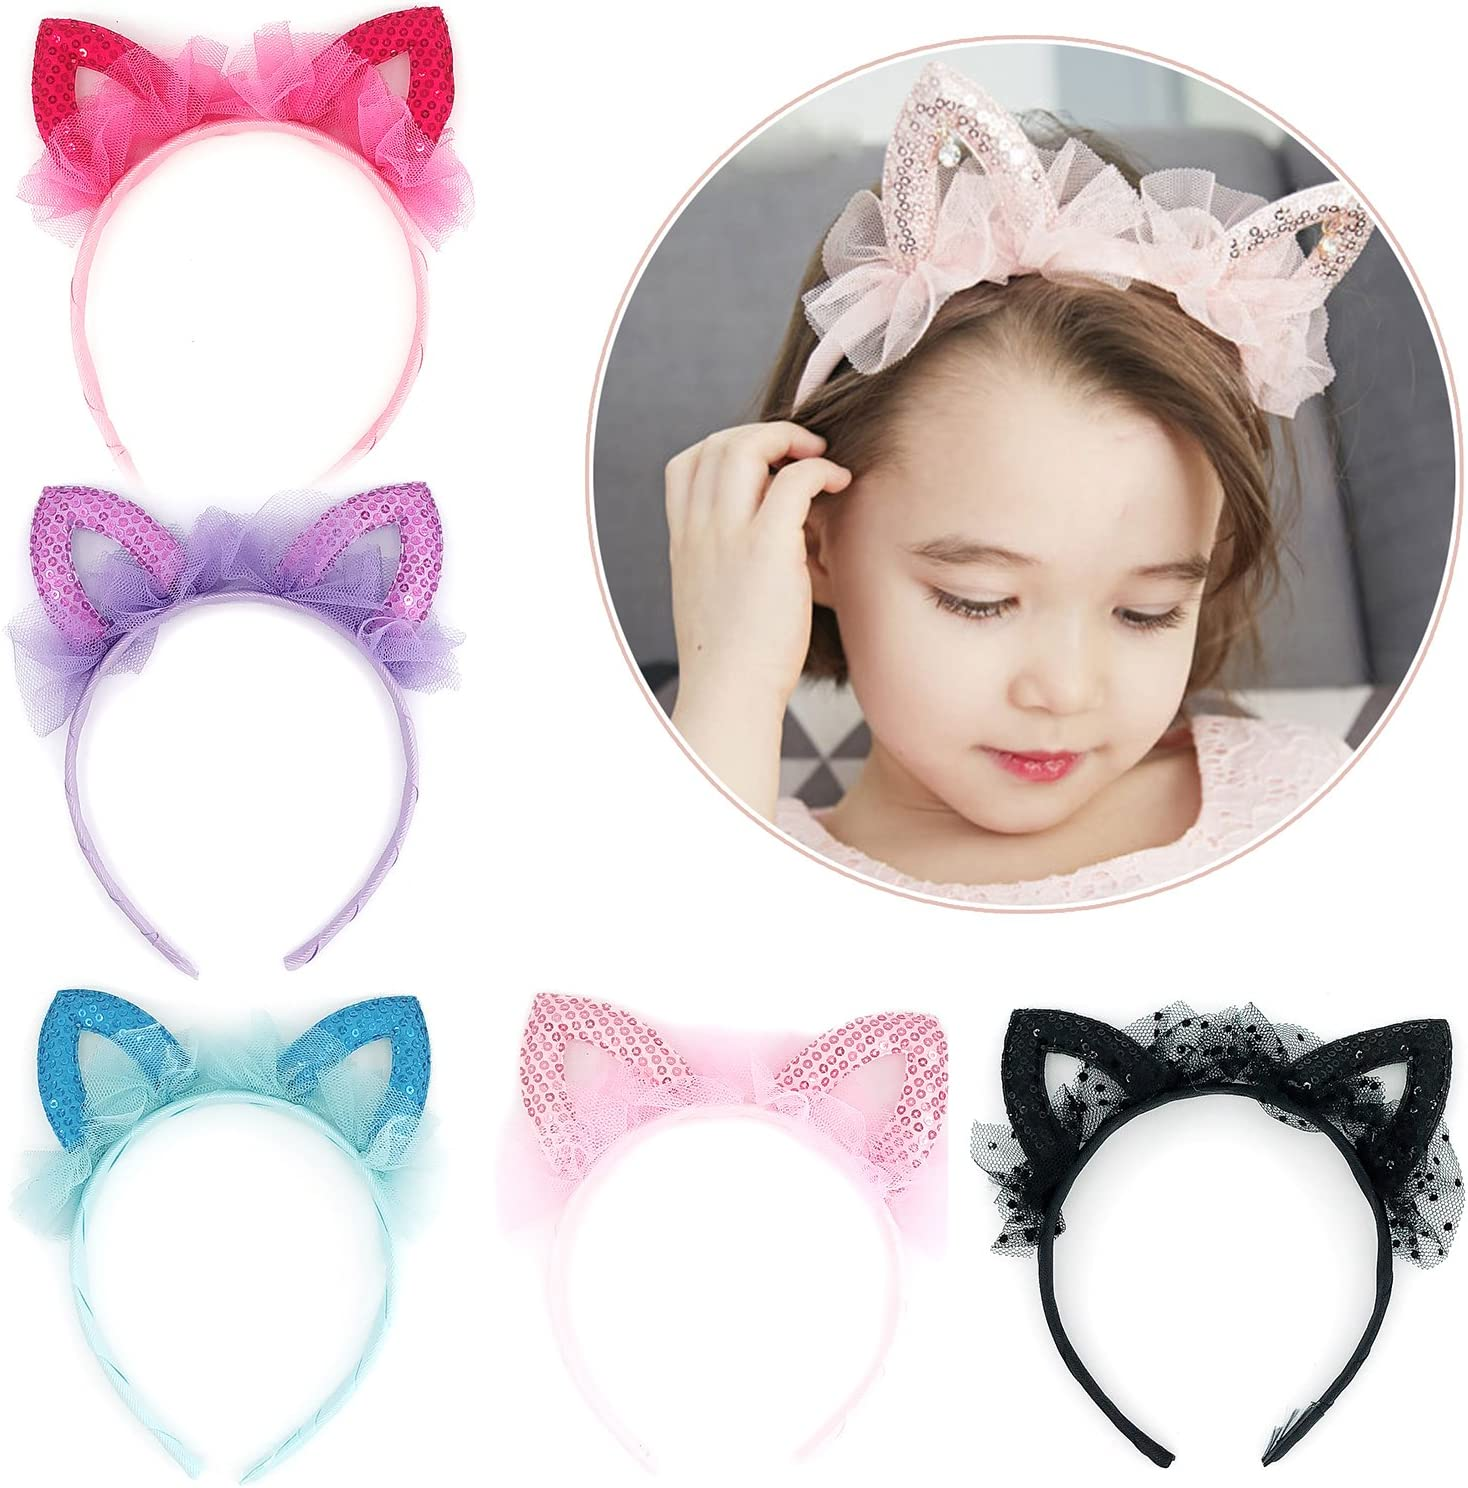 New Boutique Sequins Hairband Cat Ears Crown Hair Hoop Headbands For Girls Kids